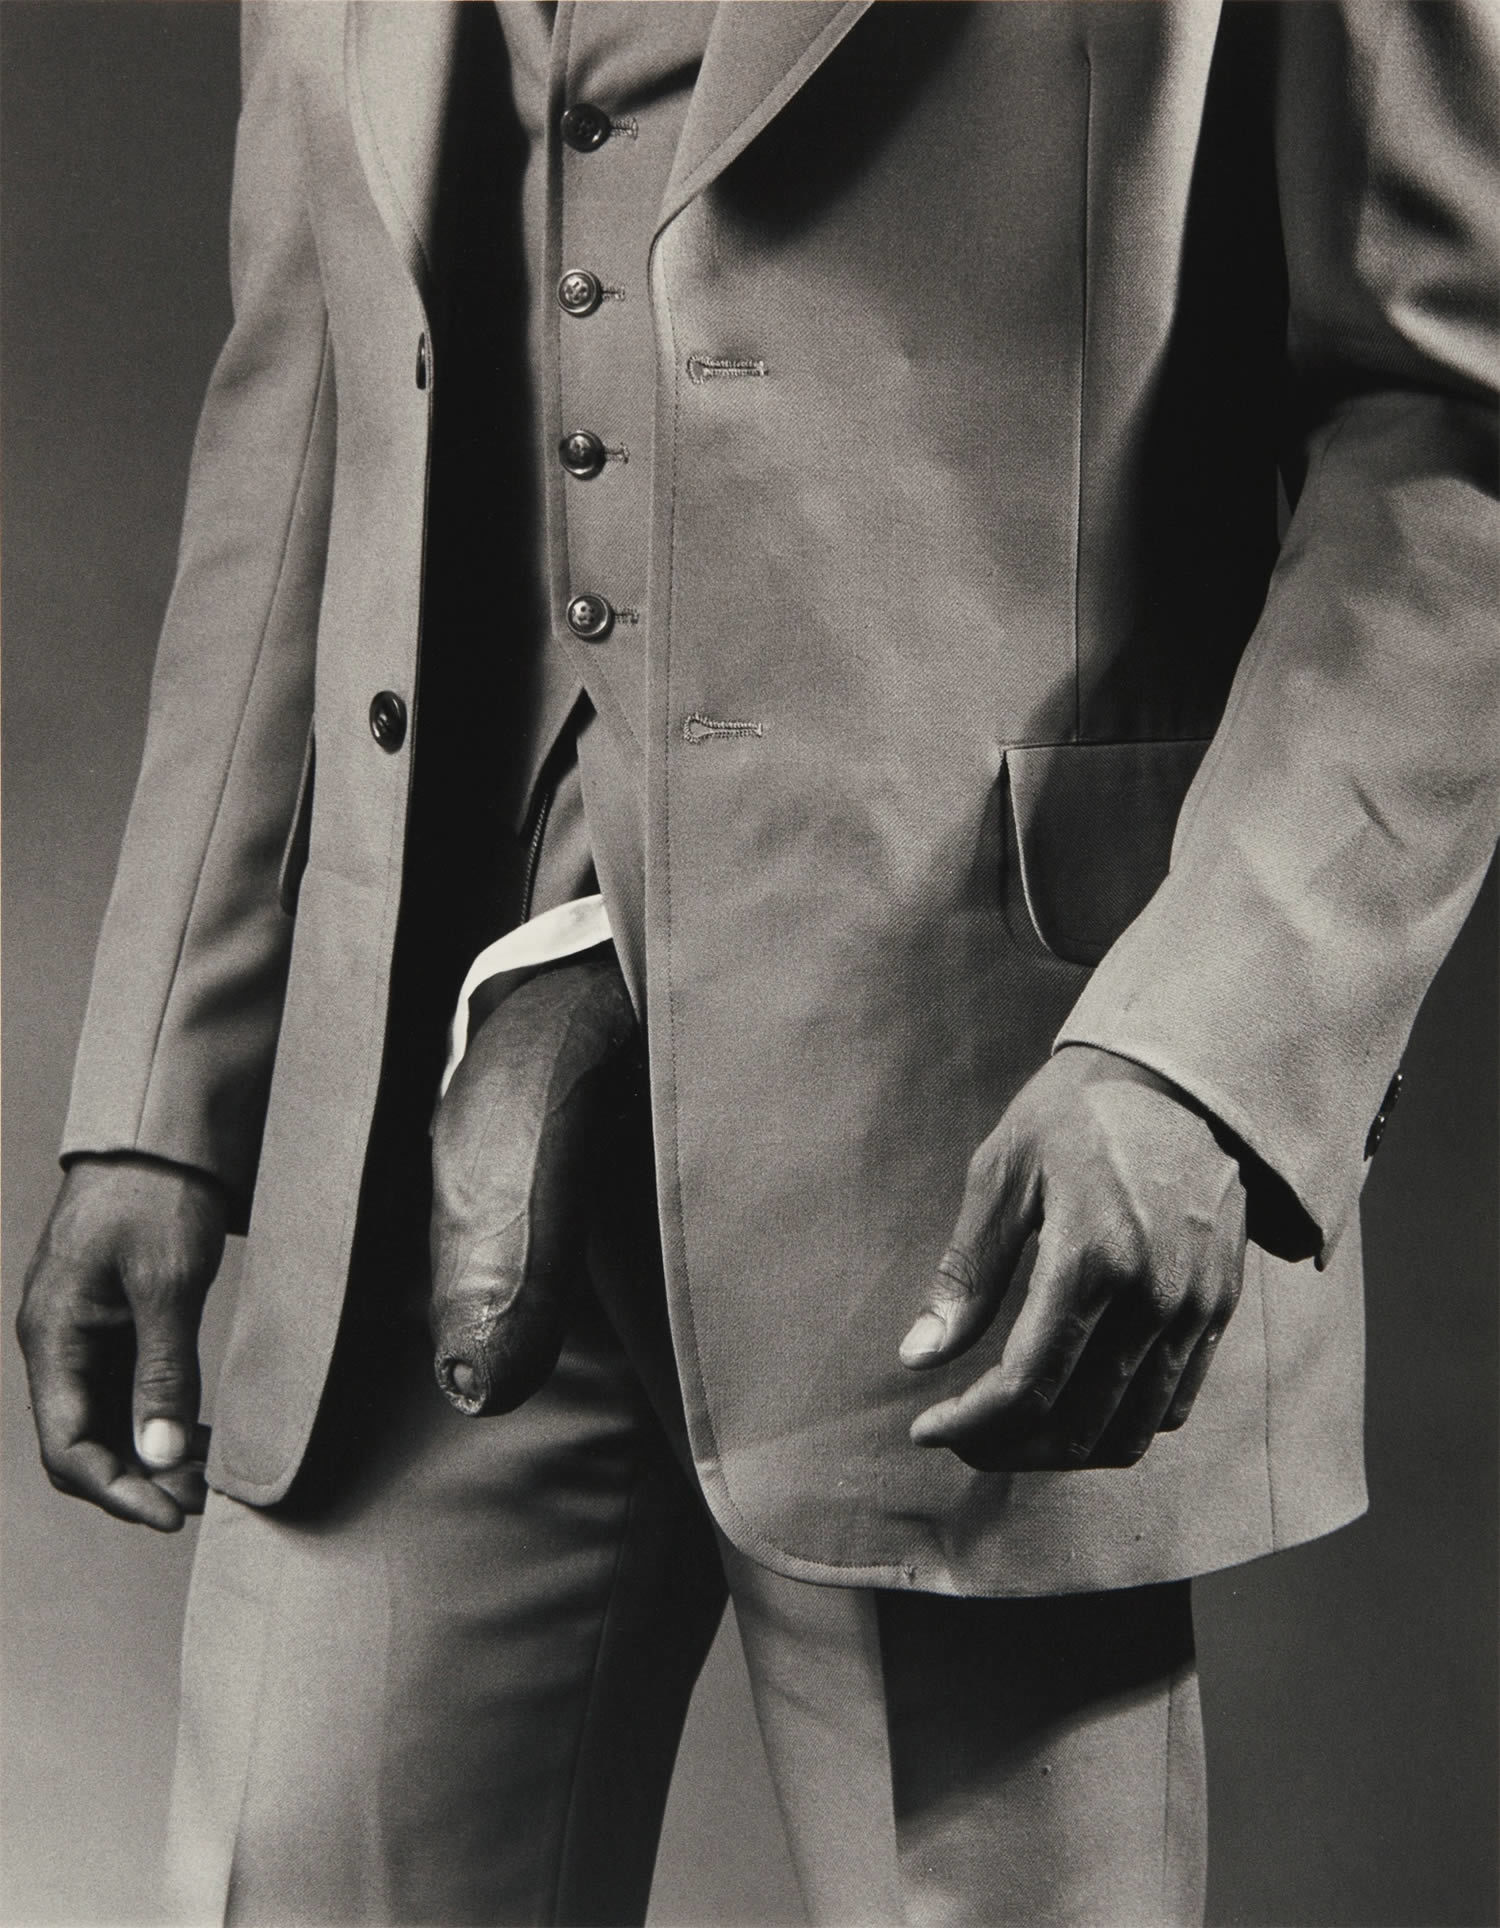 Robert Mapplethorpe, Man in Polyester Suit (1980) Image: courtesy of Sotheby's Robert Mapplethorpe, Man in Polyester Suit (1980) Image: courtesy of Sotheby's